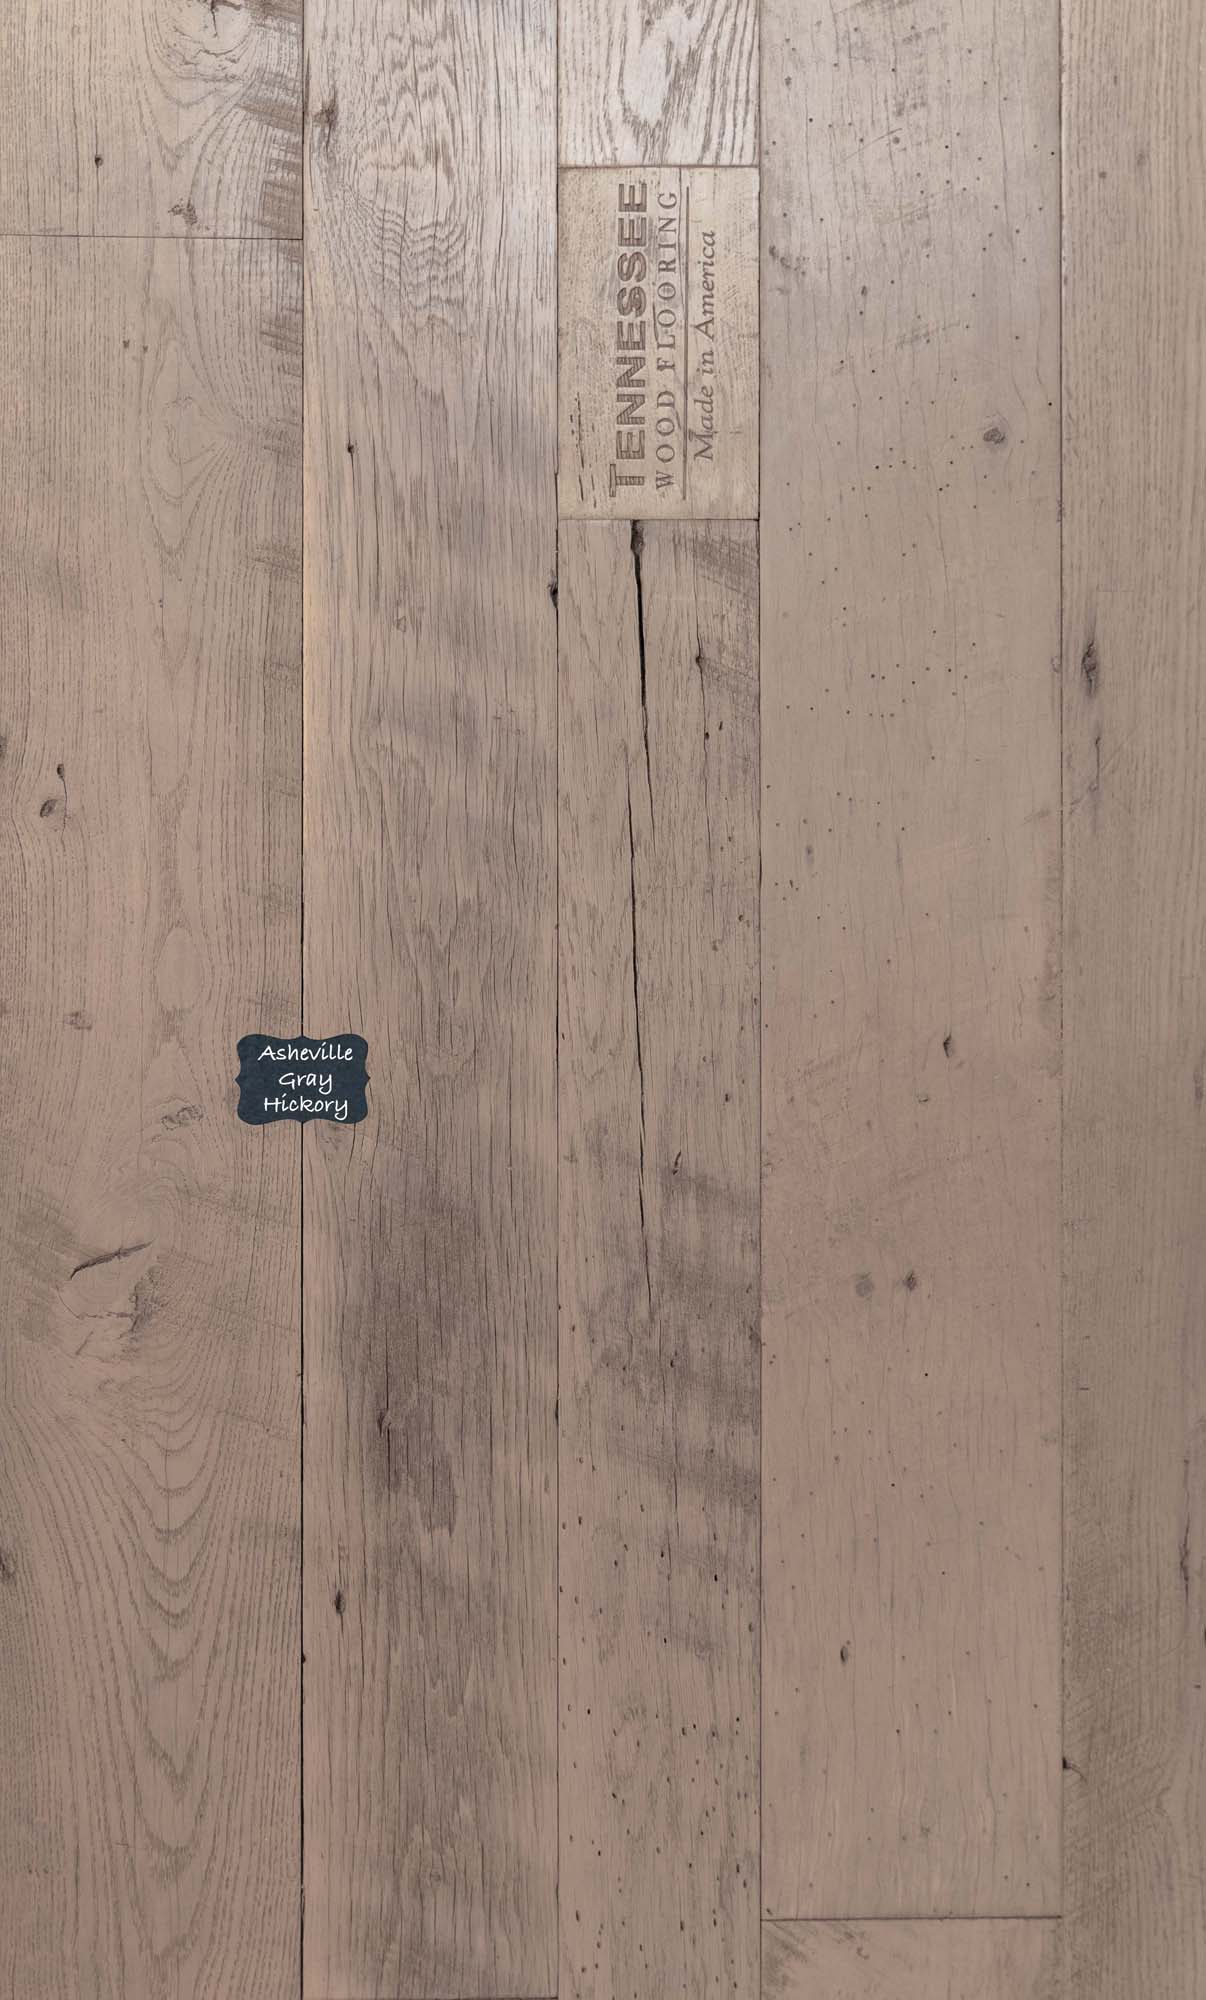 Asheville Gray Hickory Reclaimed Wood Flooring. Our Reclaimed lineup is our premium quality product line with a unique and classic look